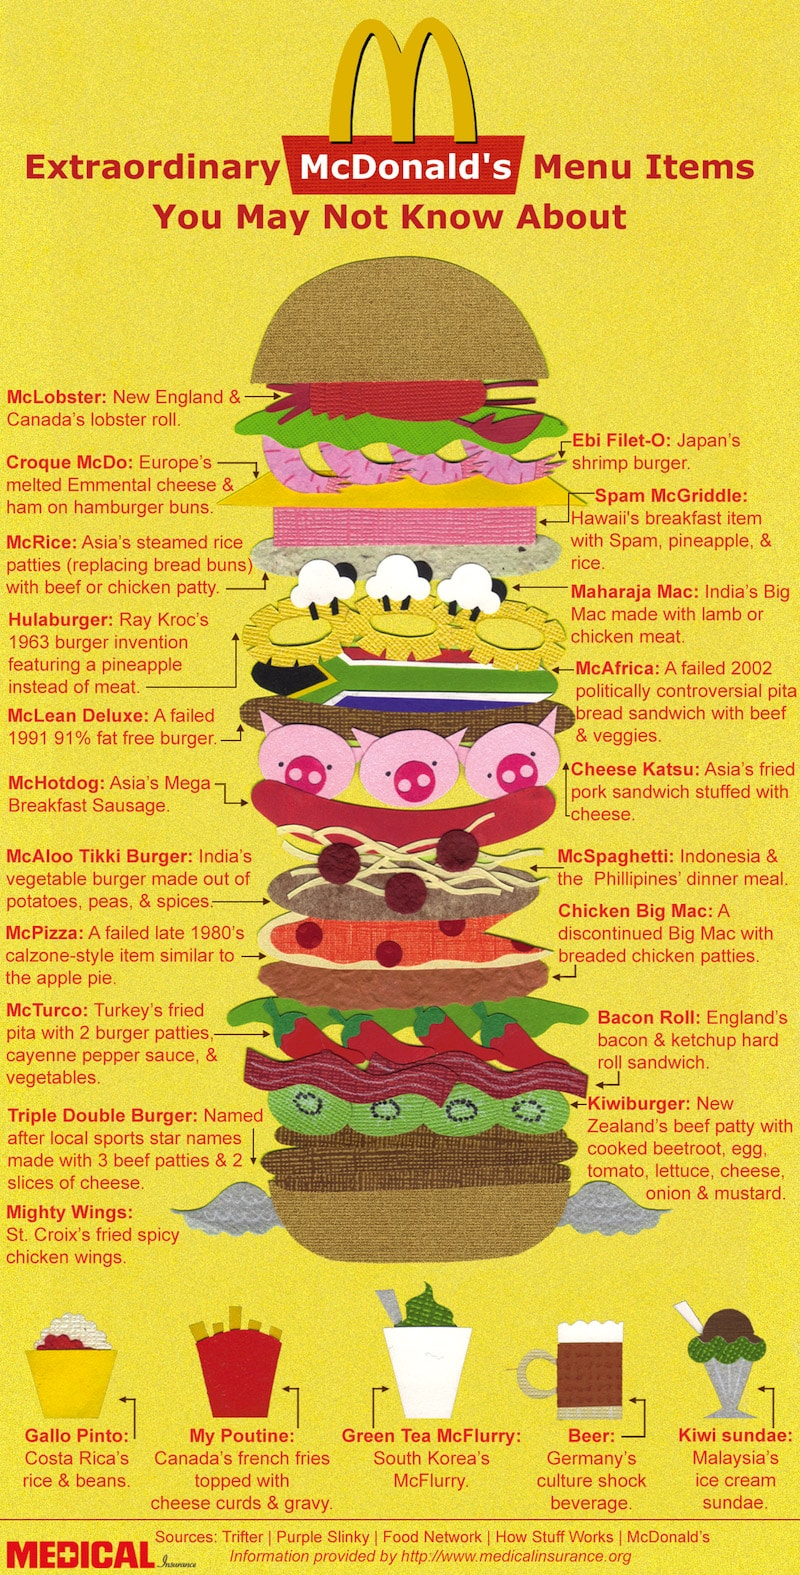 mcdonalds-odd-menu-items